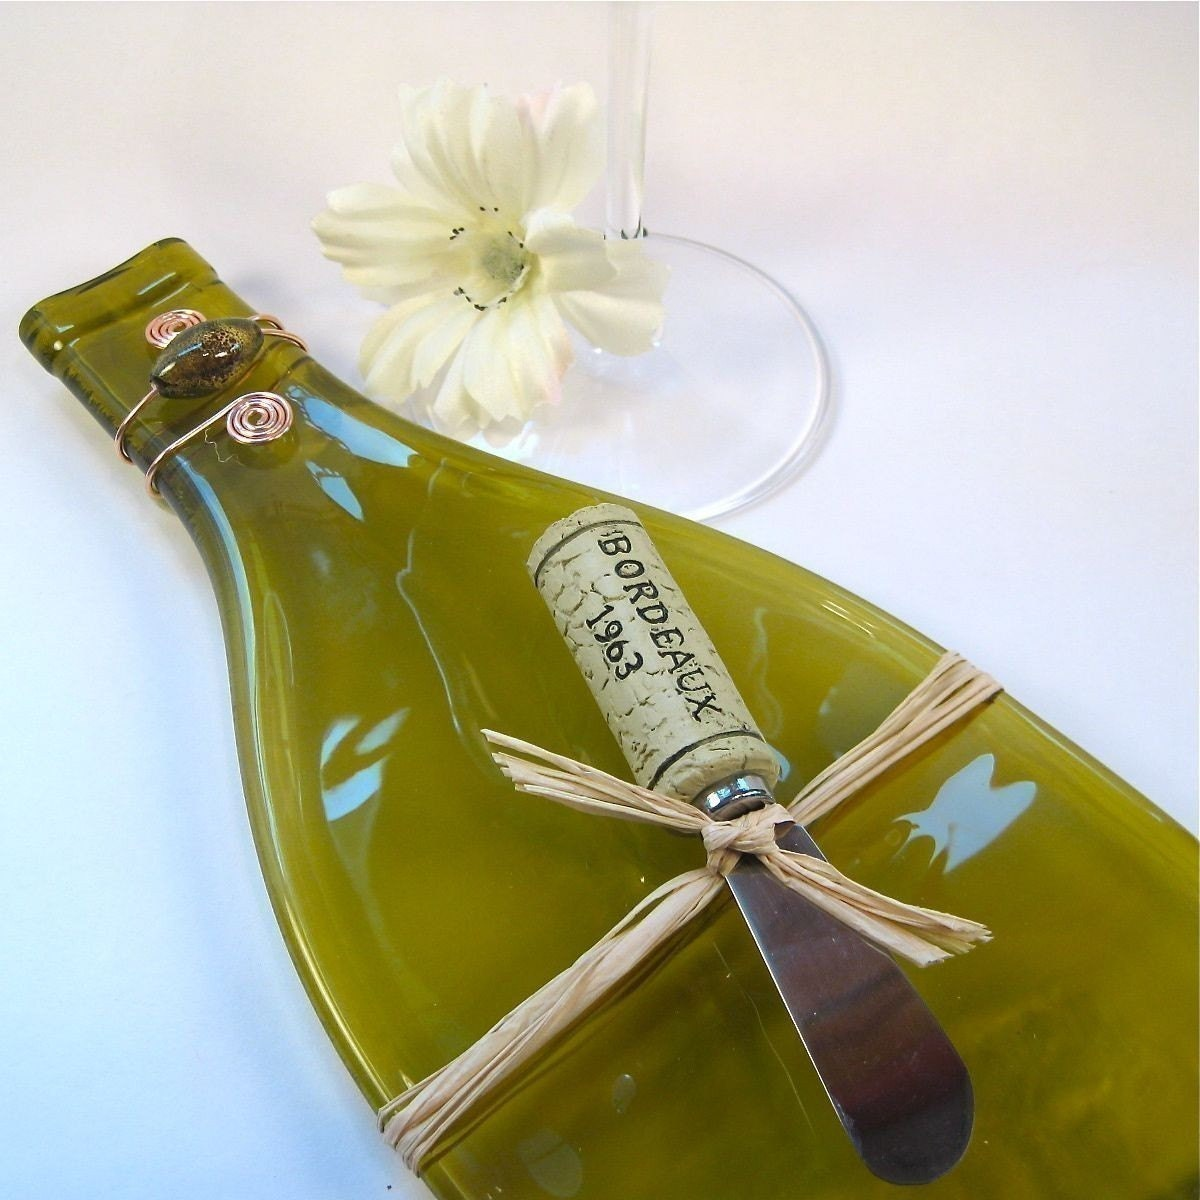 Flattened Wine Bottle Serving Tray - Olive Green and Eco Friendly